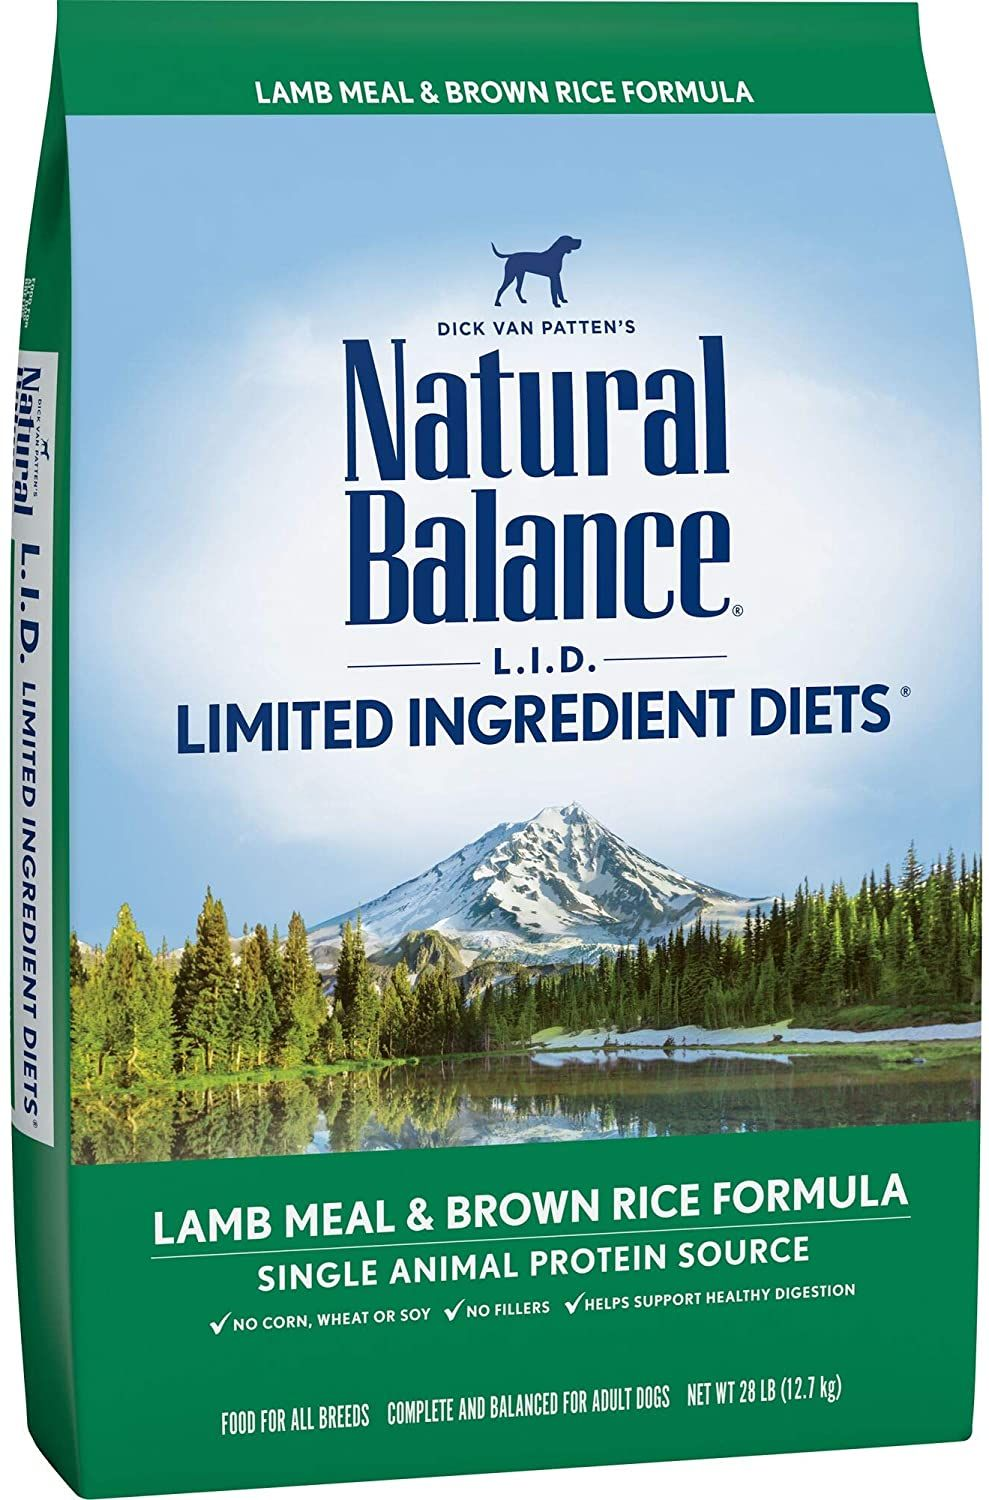 natural balance limited ingredient diets dry dog food with grains lamb meal and brown rice formula